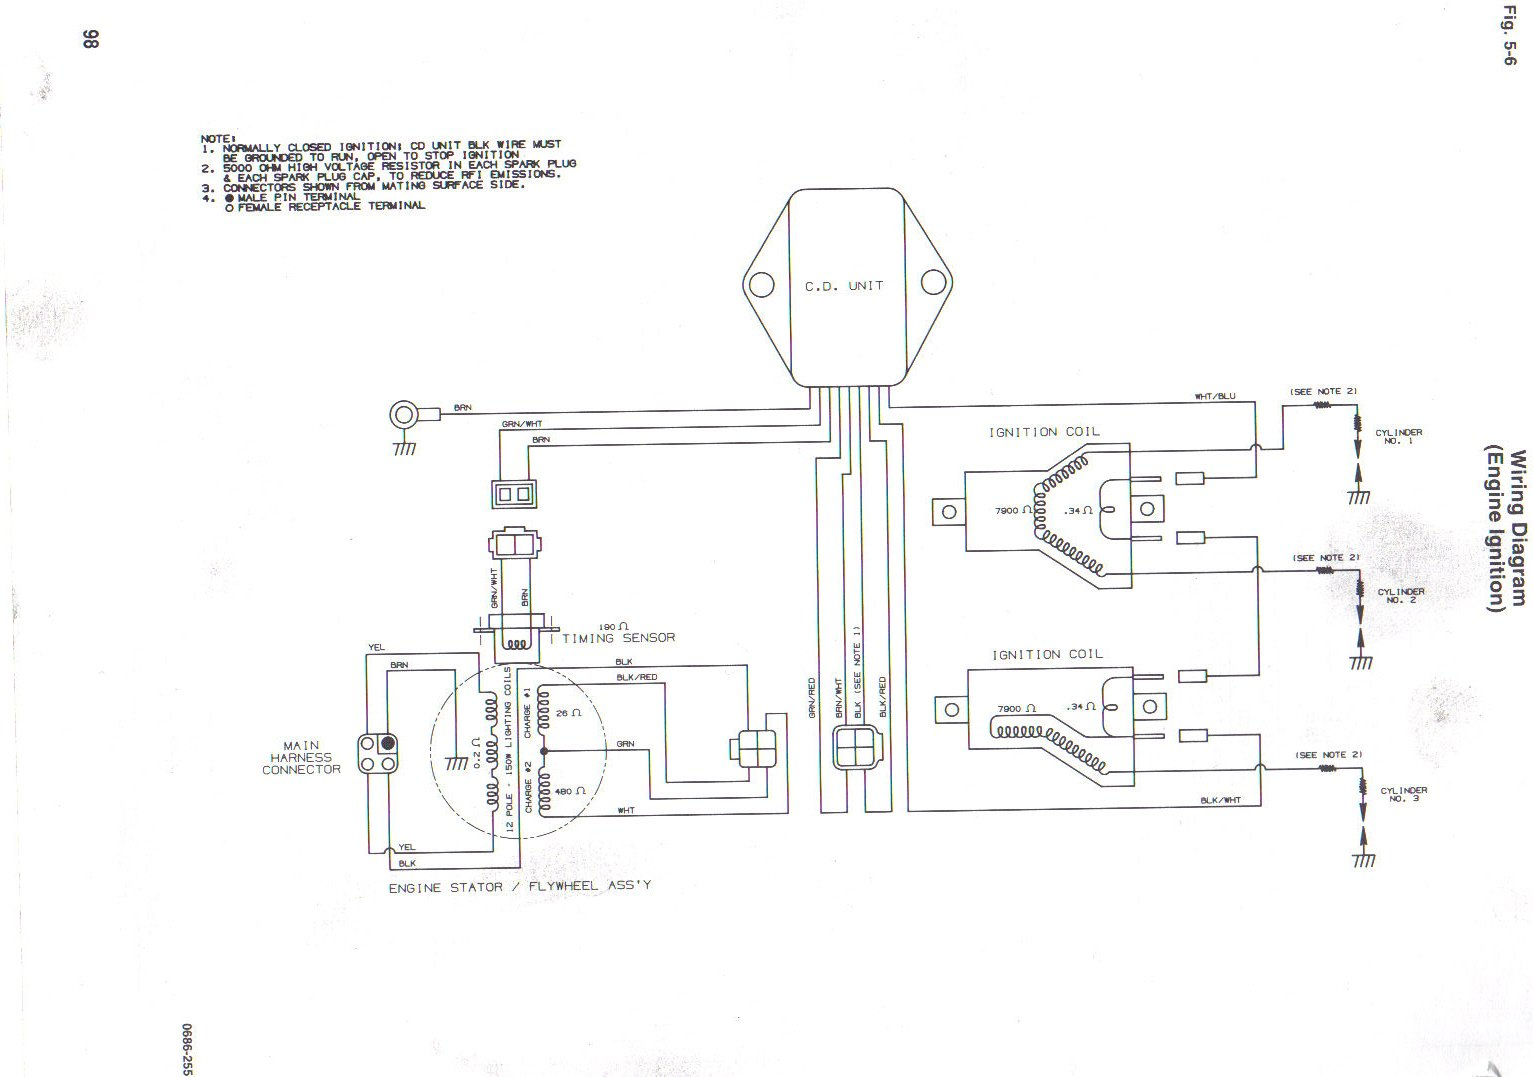 hight resolution of wiring diagrams suzuki quad runner 250 wire center u2022 rh plasmapen co 1999 suzuki quadrunner 250